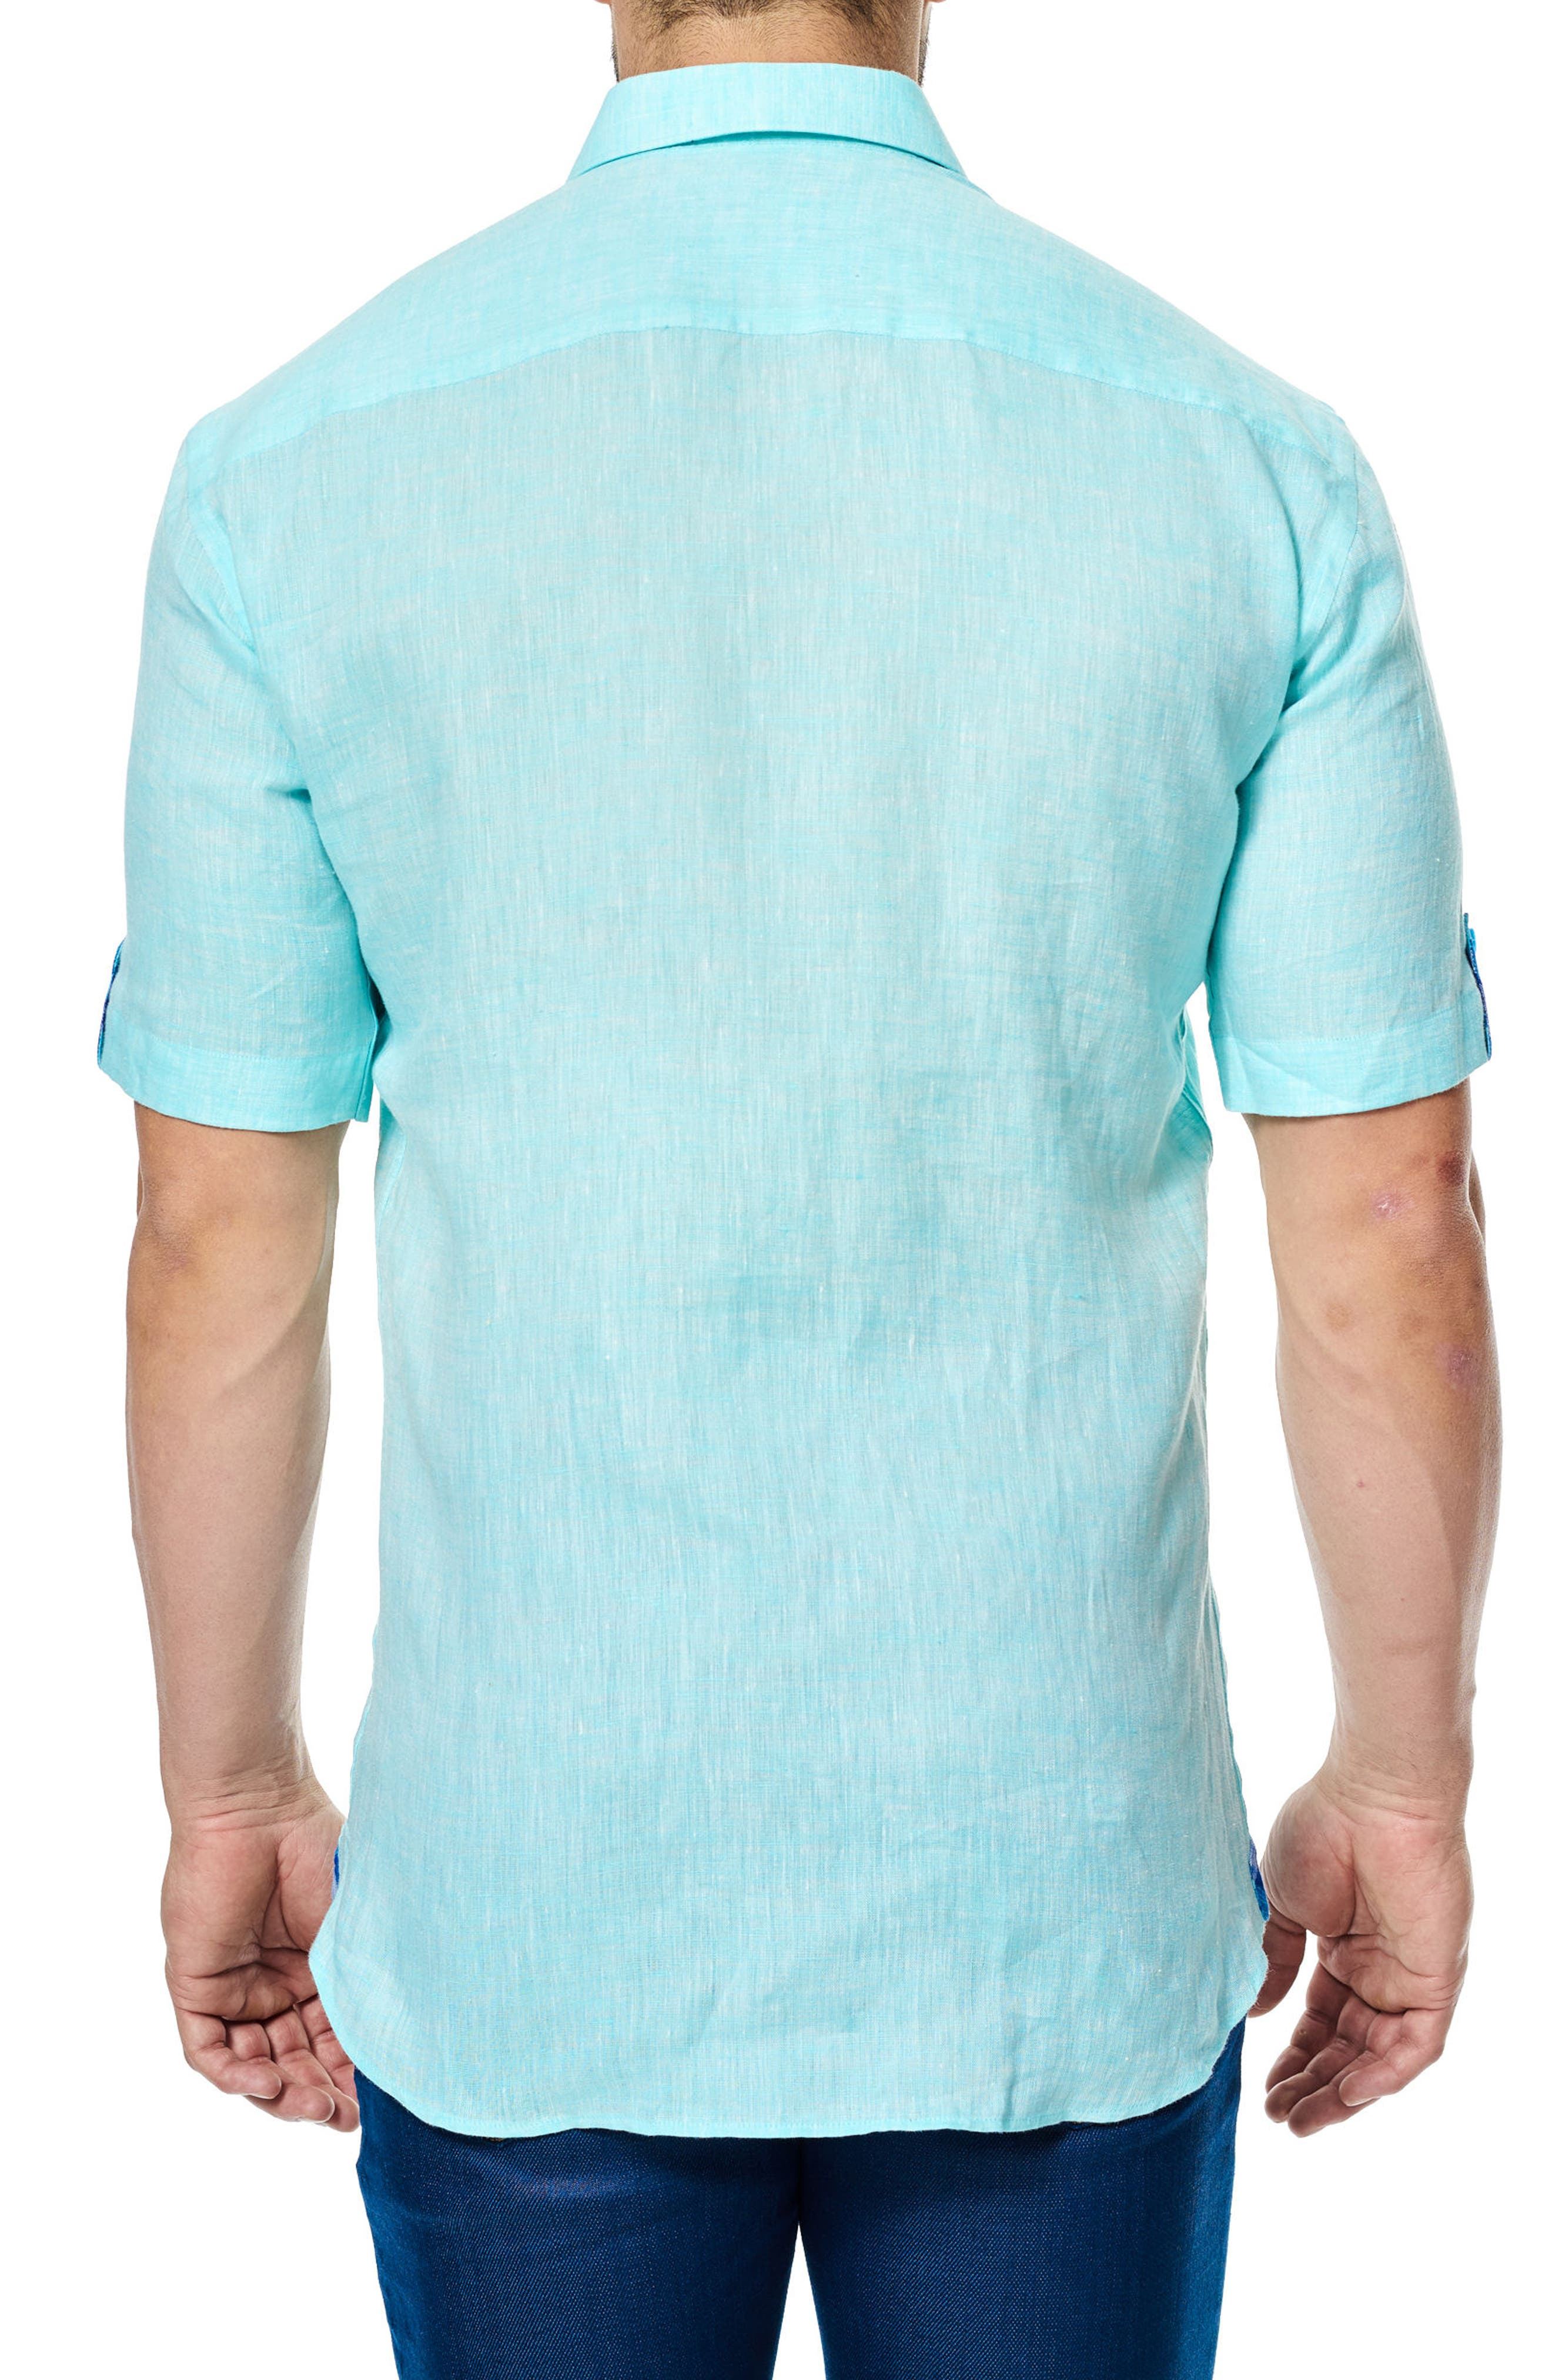 Fresh Sport Shirt,                             Alternate thumbnail 2, color,                             422